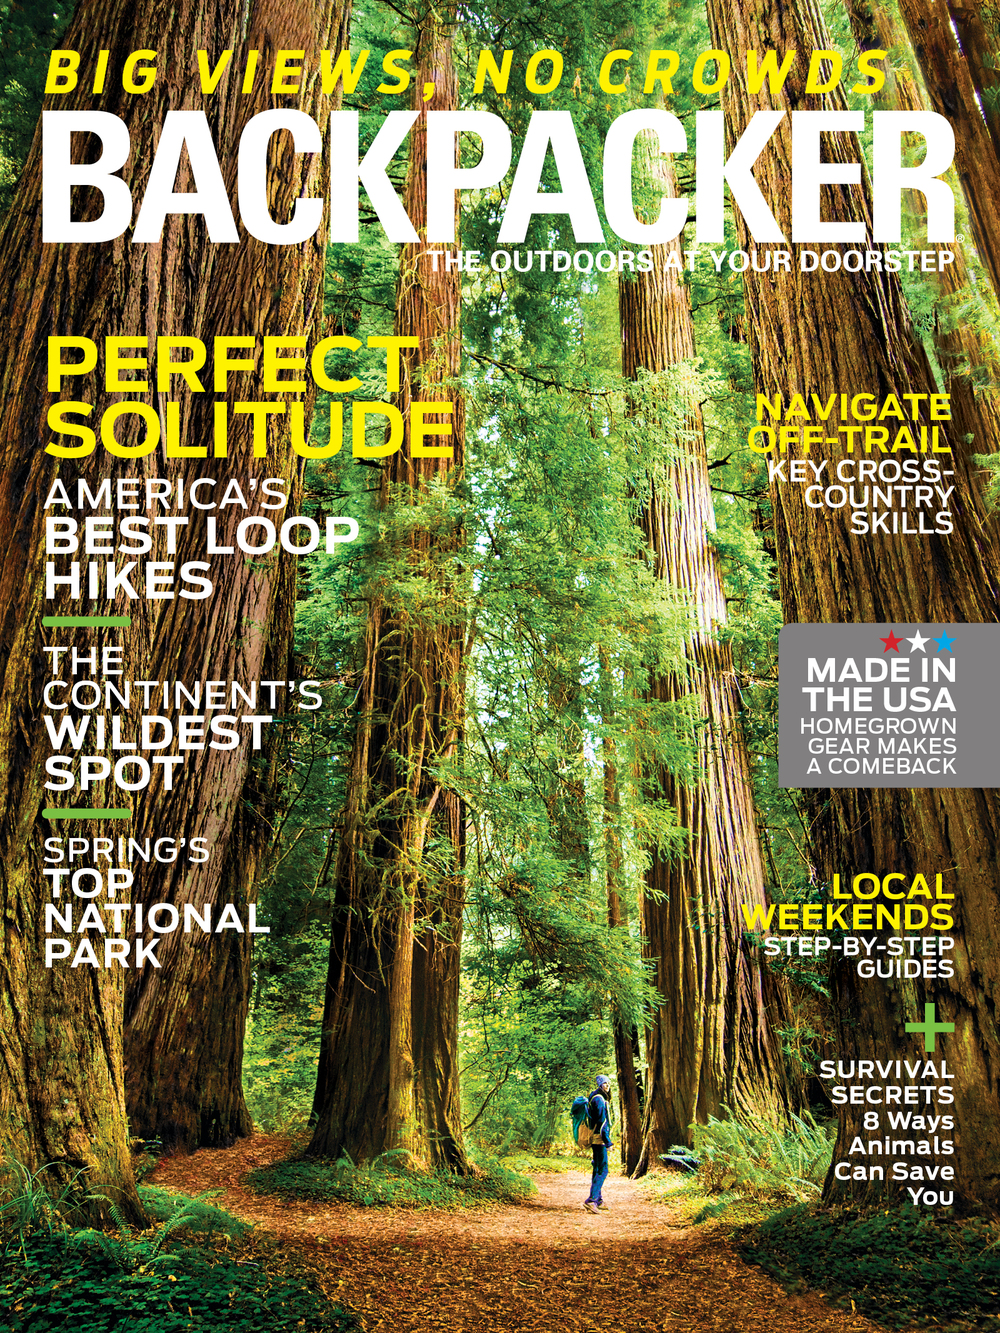 Bell Mountain Trail Backpacker Magazine - March 2015